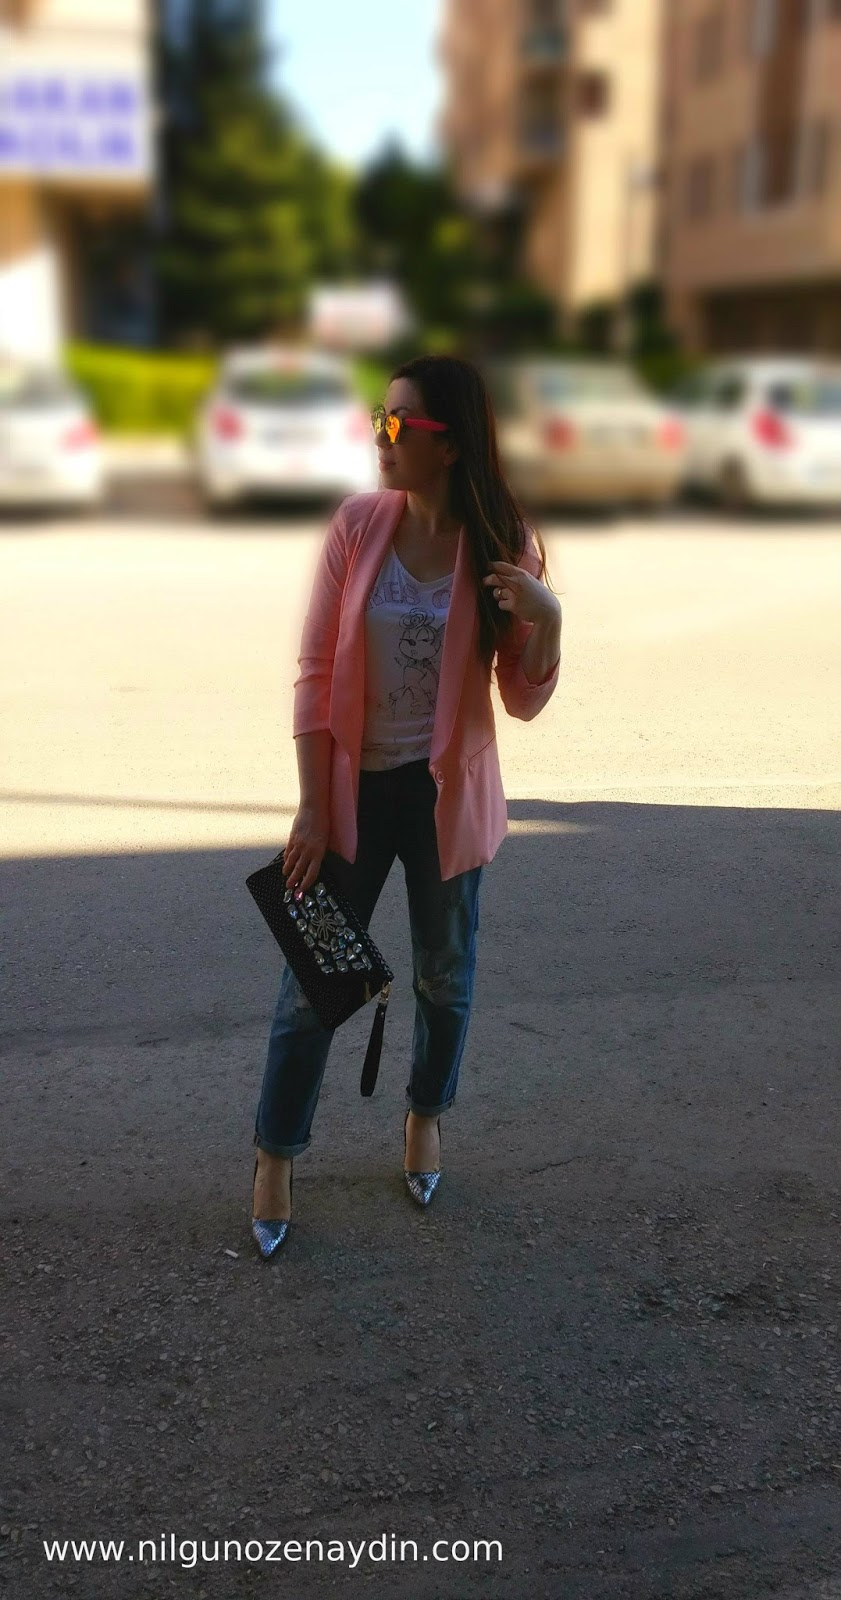 www.nilgunozenaydin.com-moda blogu-fashion blog-fashion blogger-shein-moda siteleri-my outfit